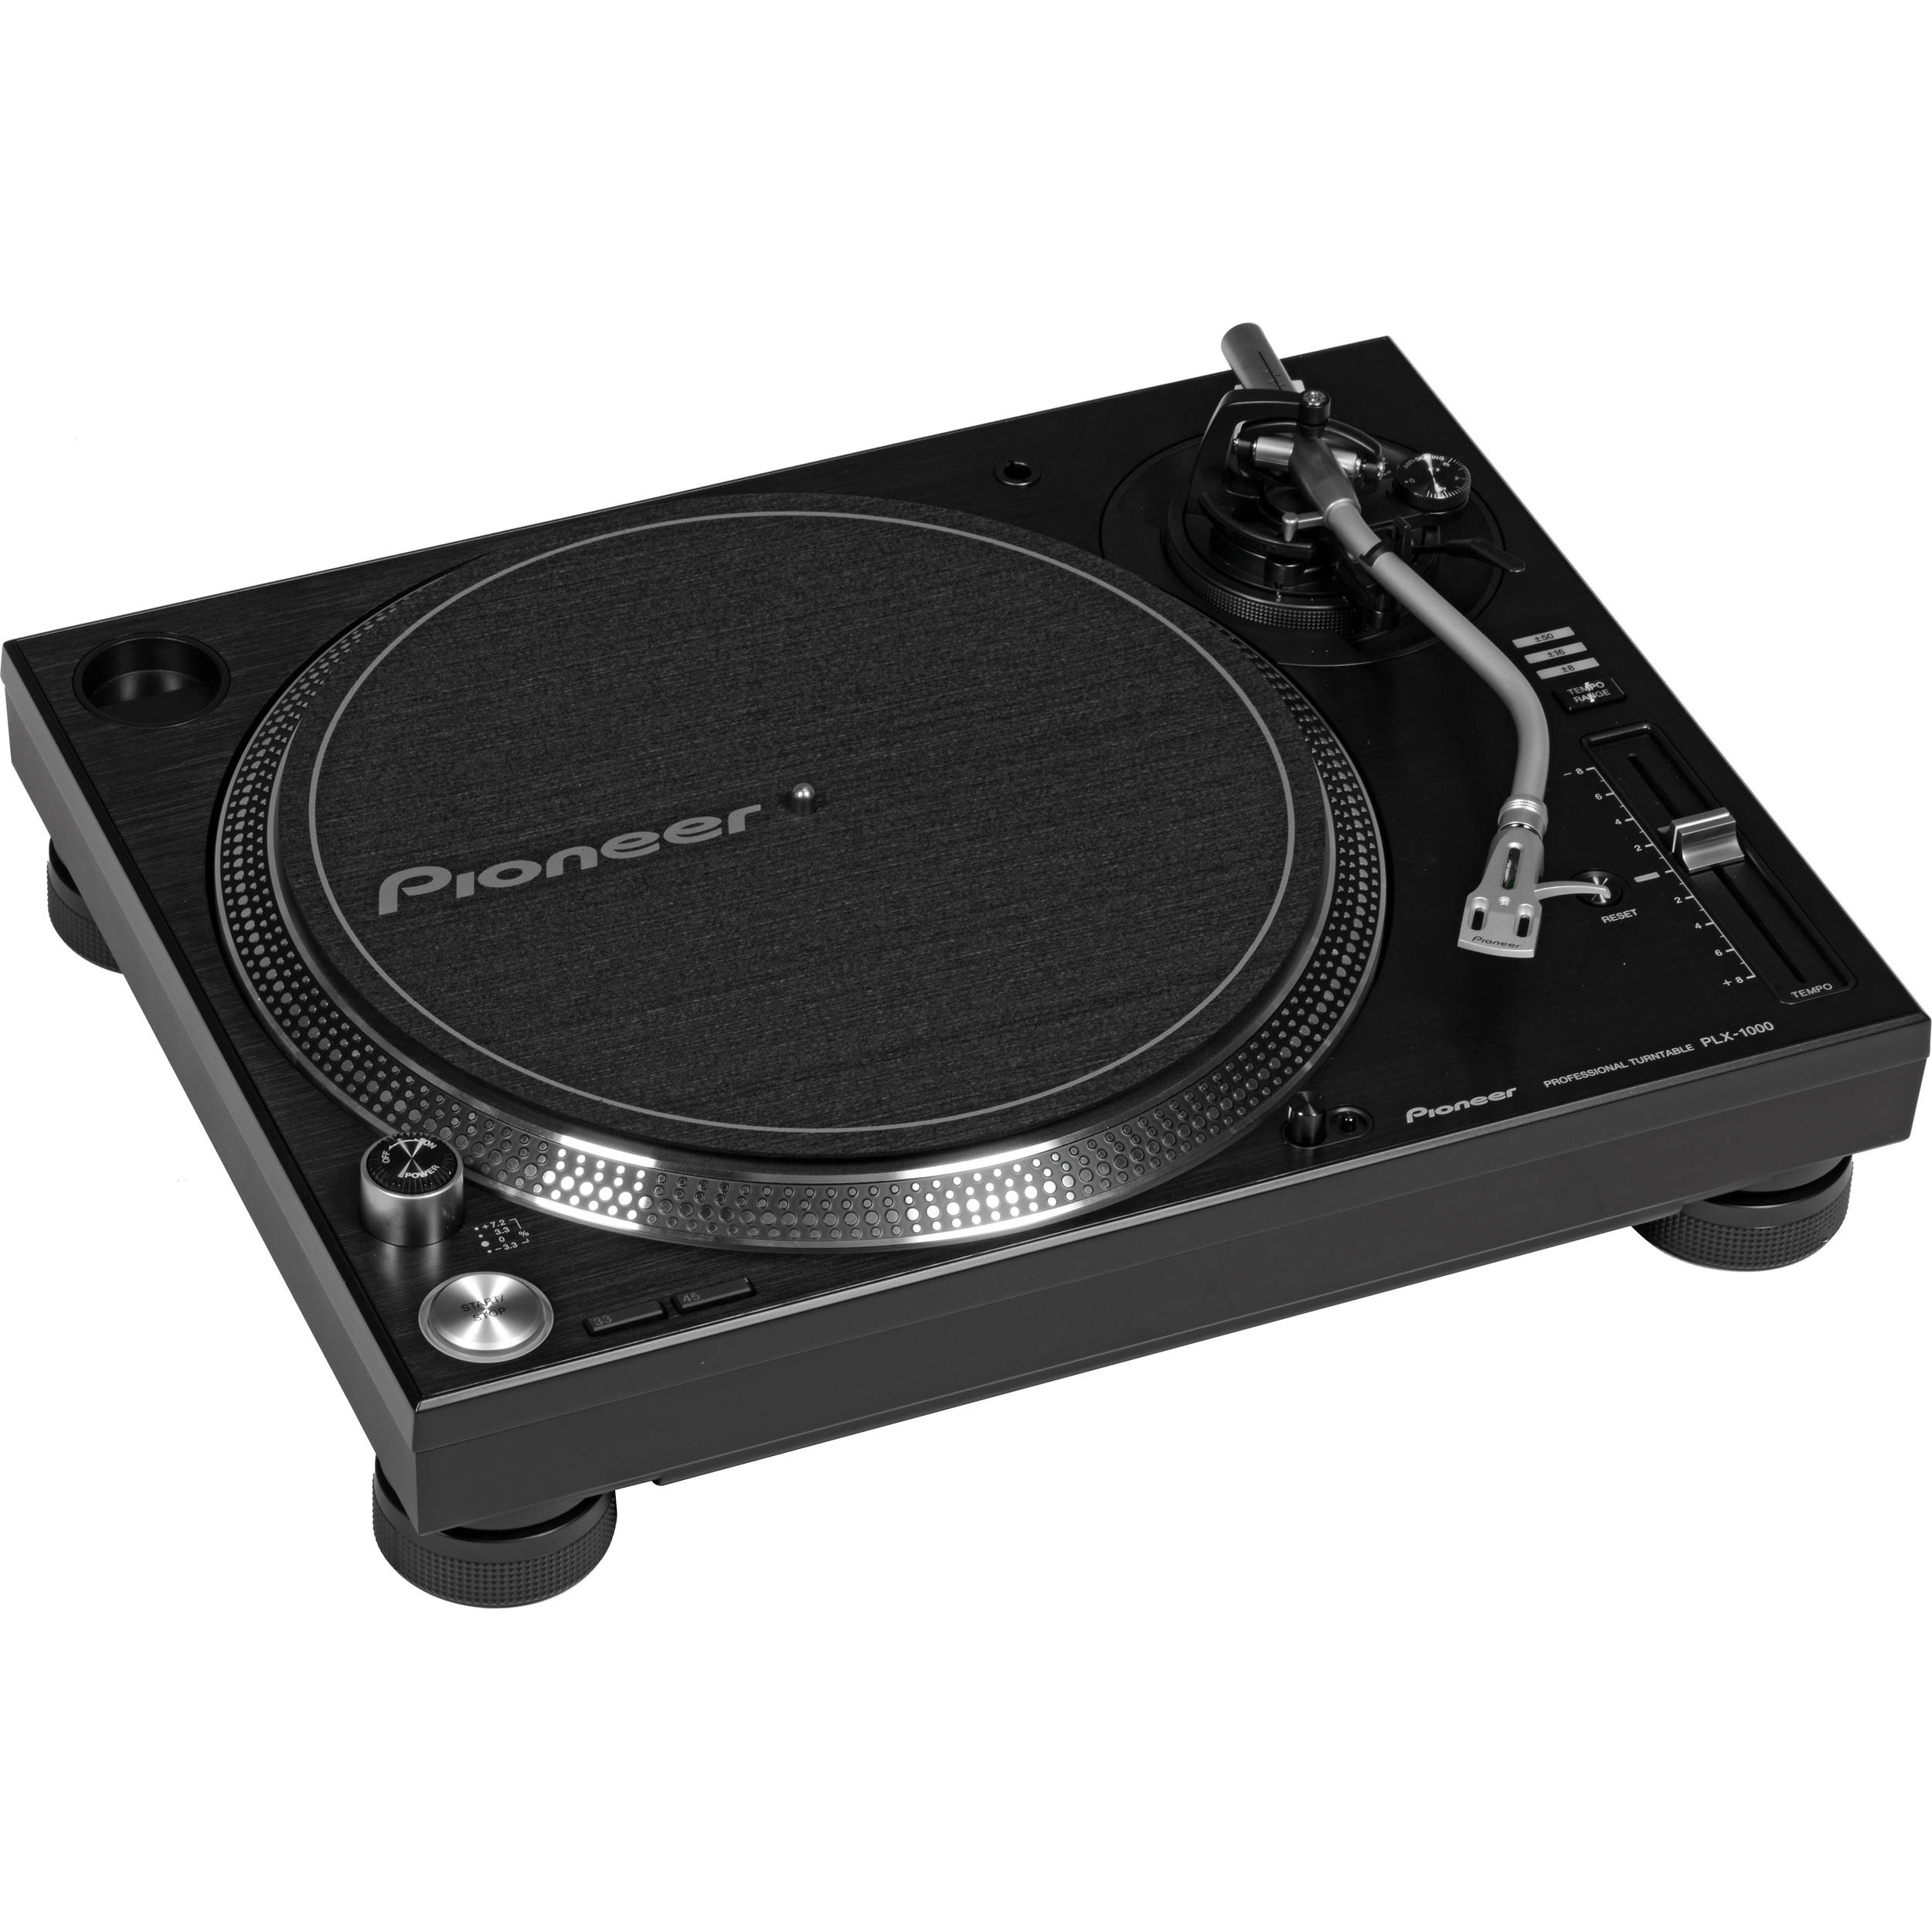 Pioneer DJ PLX-1000 Professional Turntable PLX-1000 B&H Photo